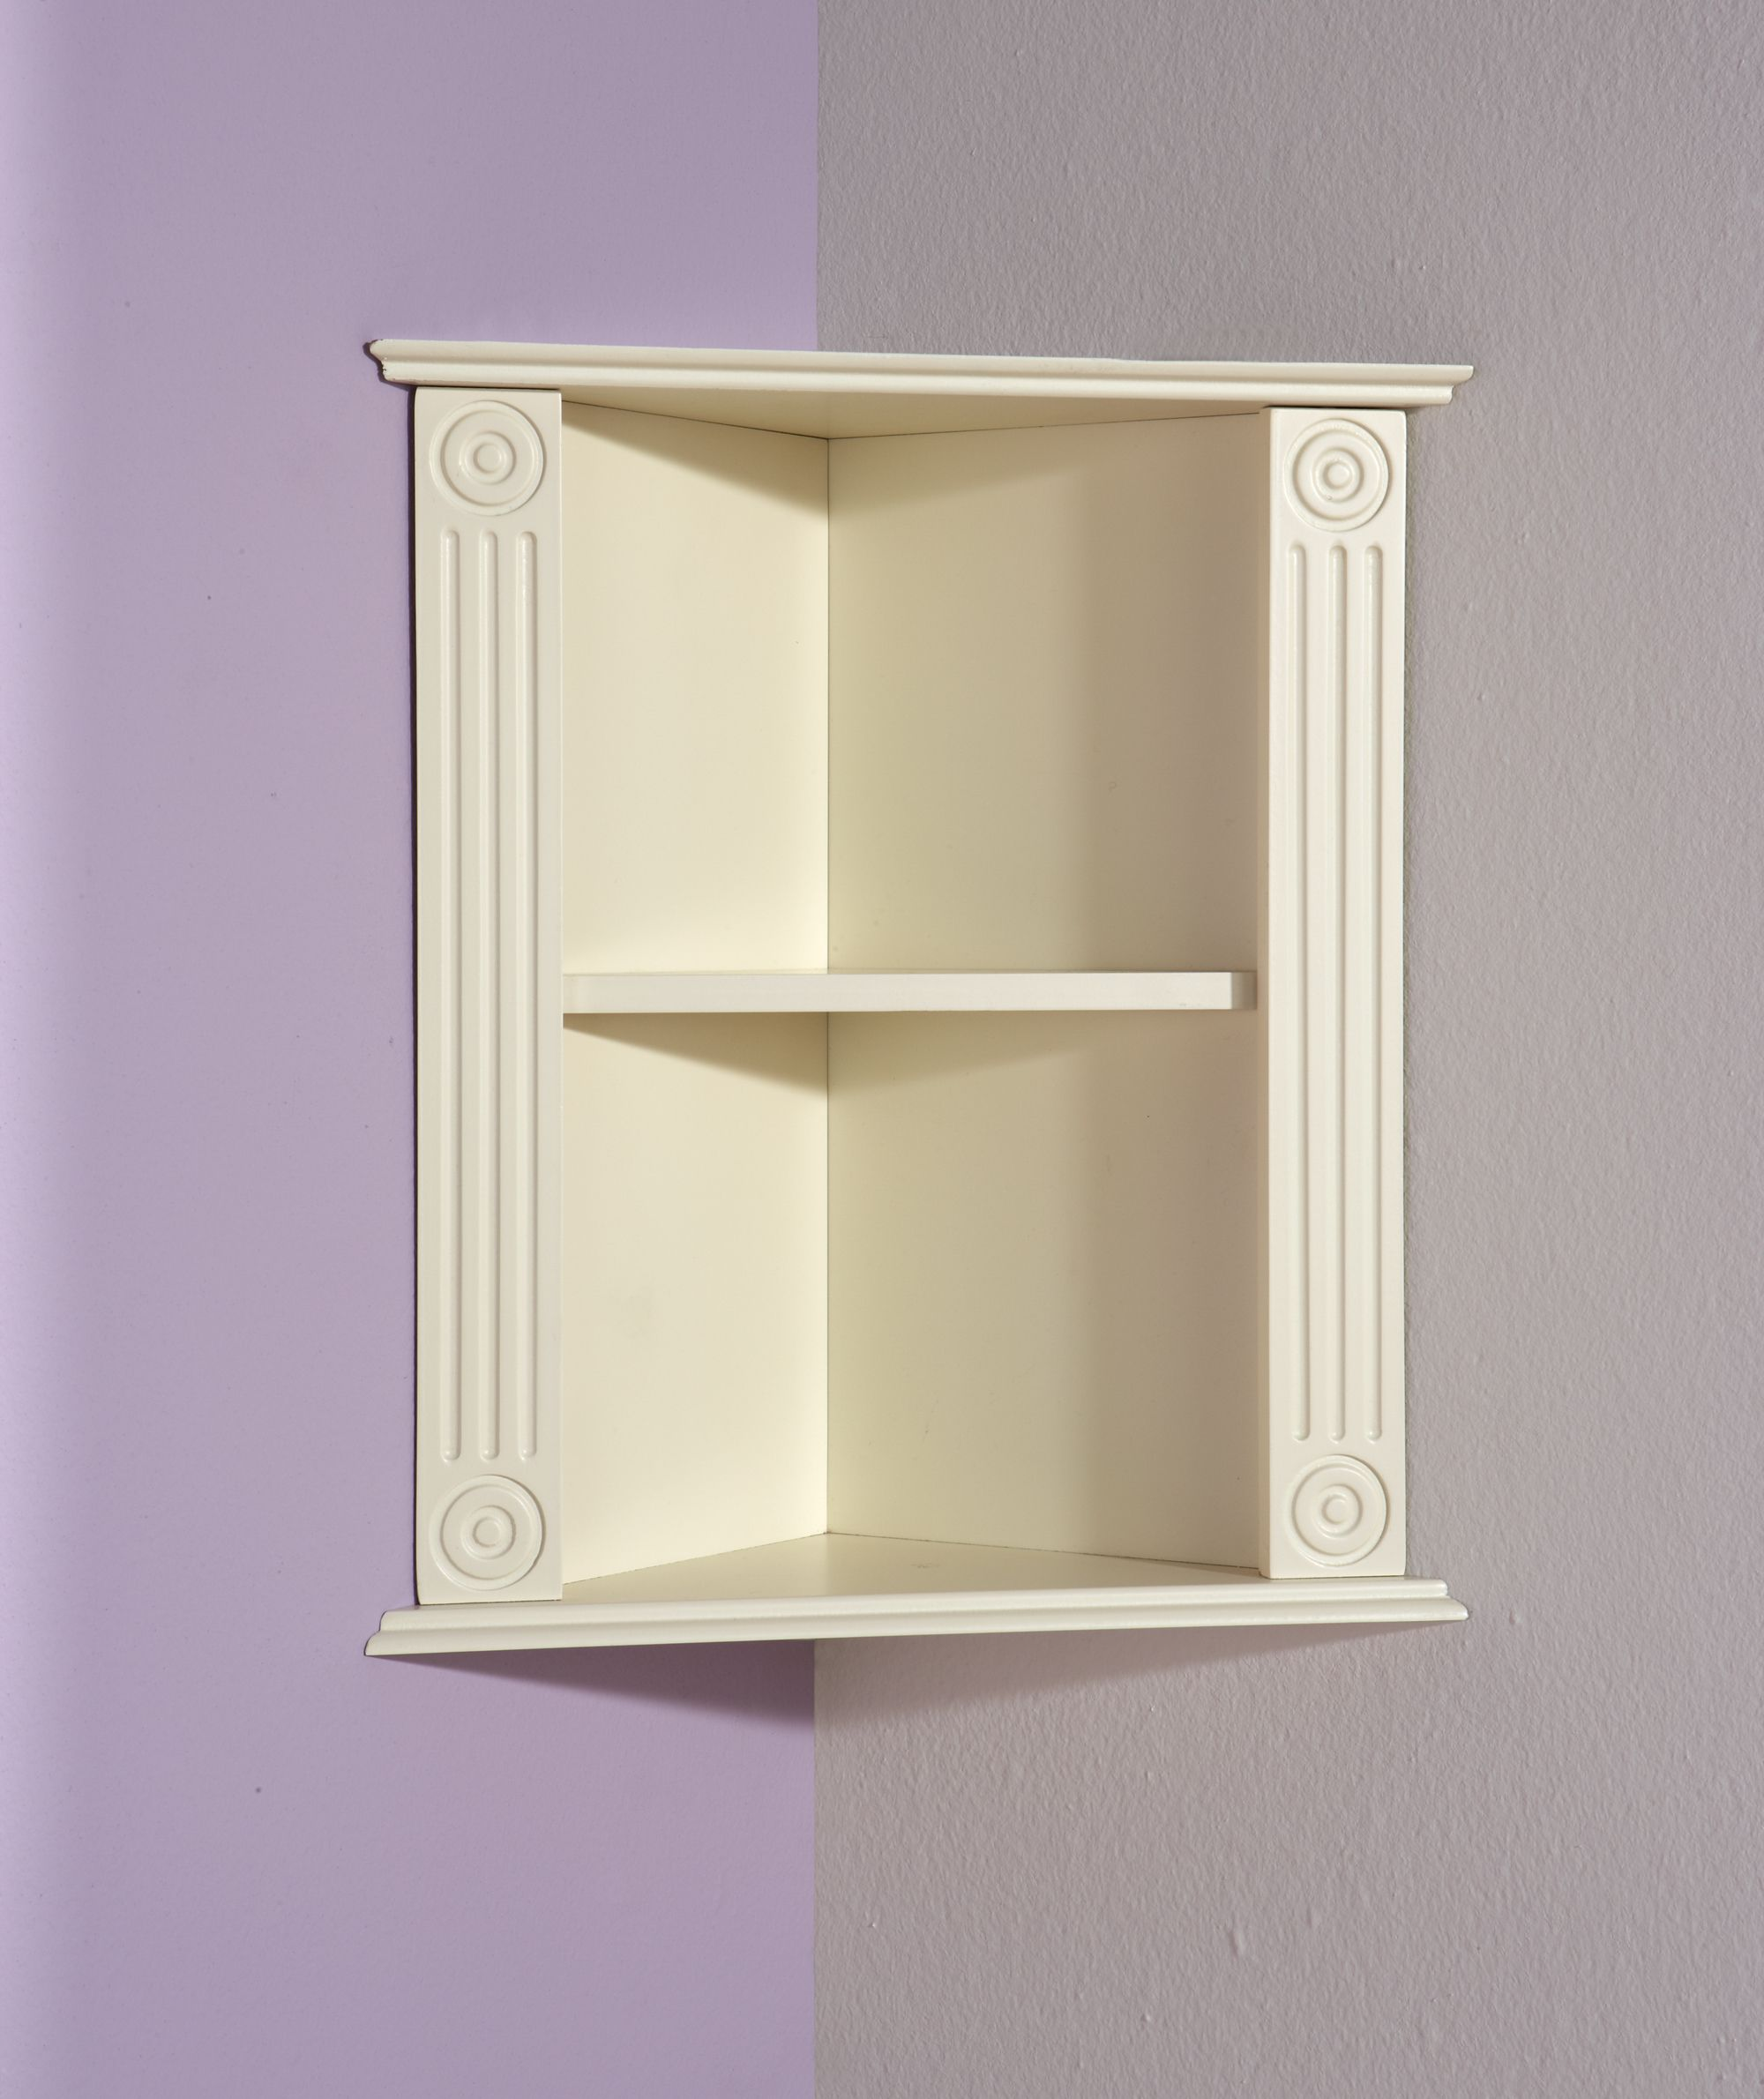 Furniture white wooden Floating Corner Shelf pleted by horse